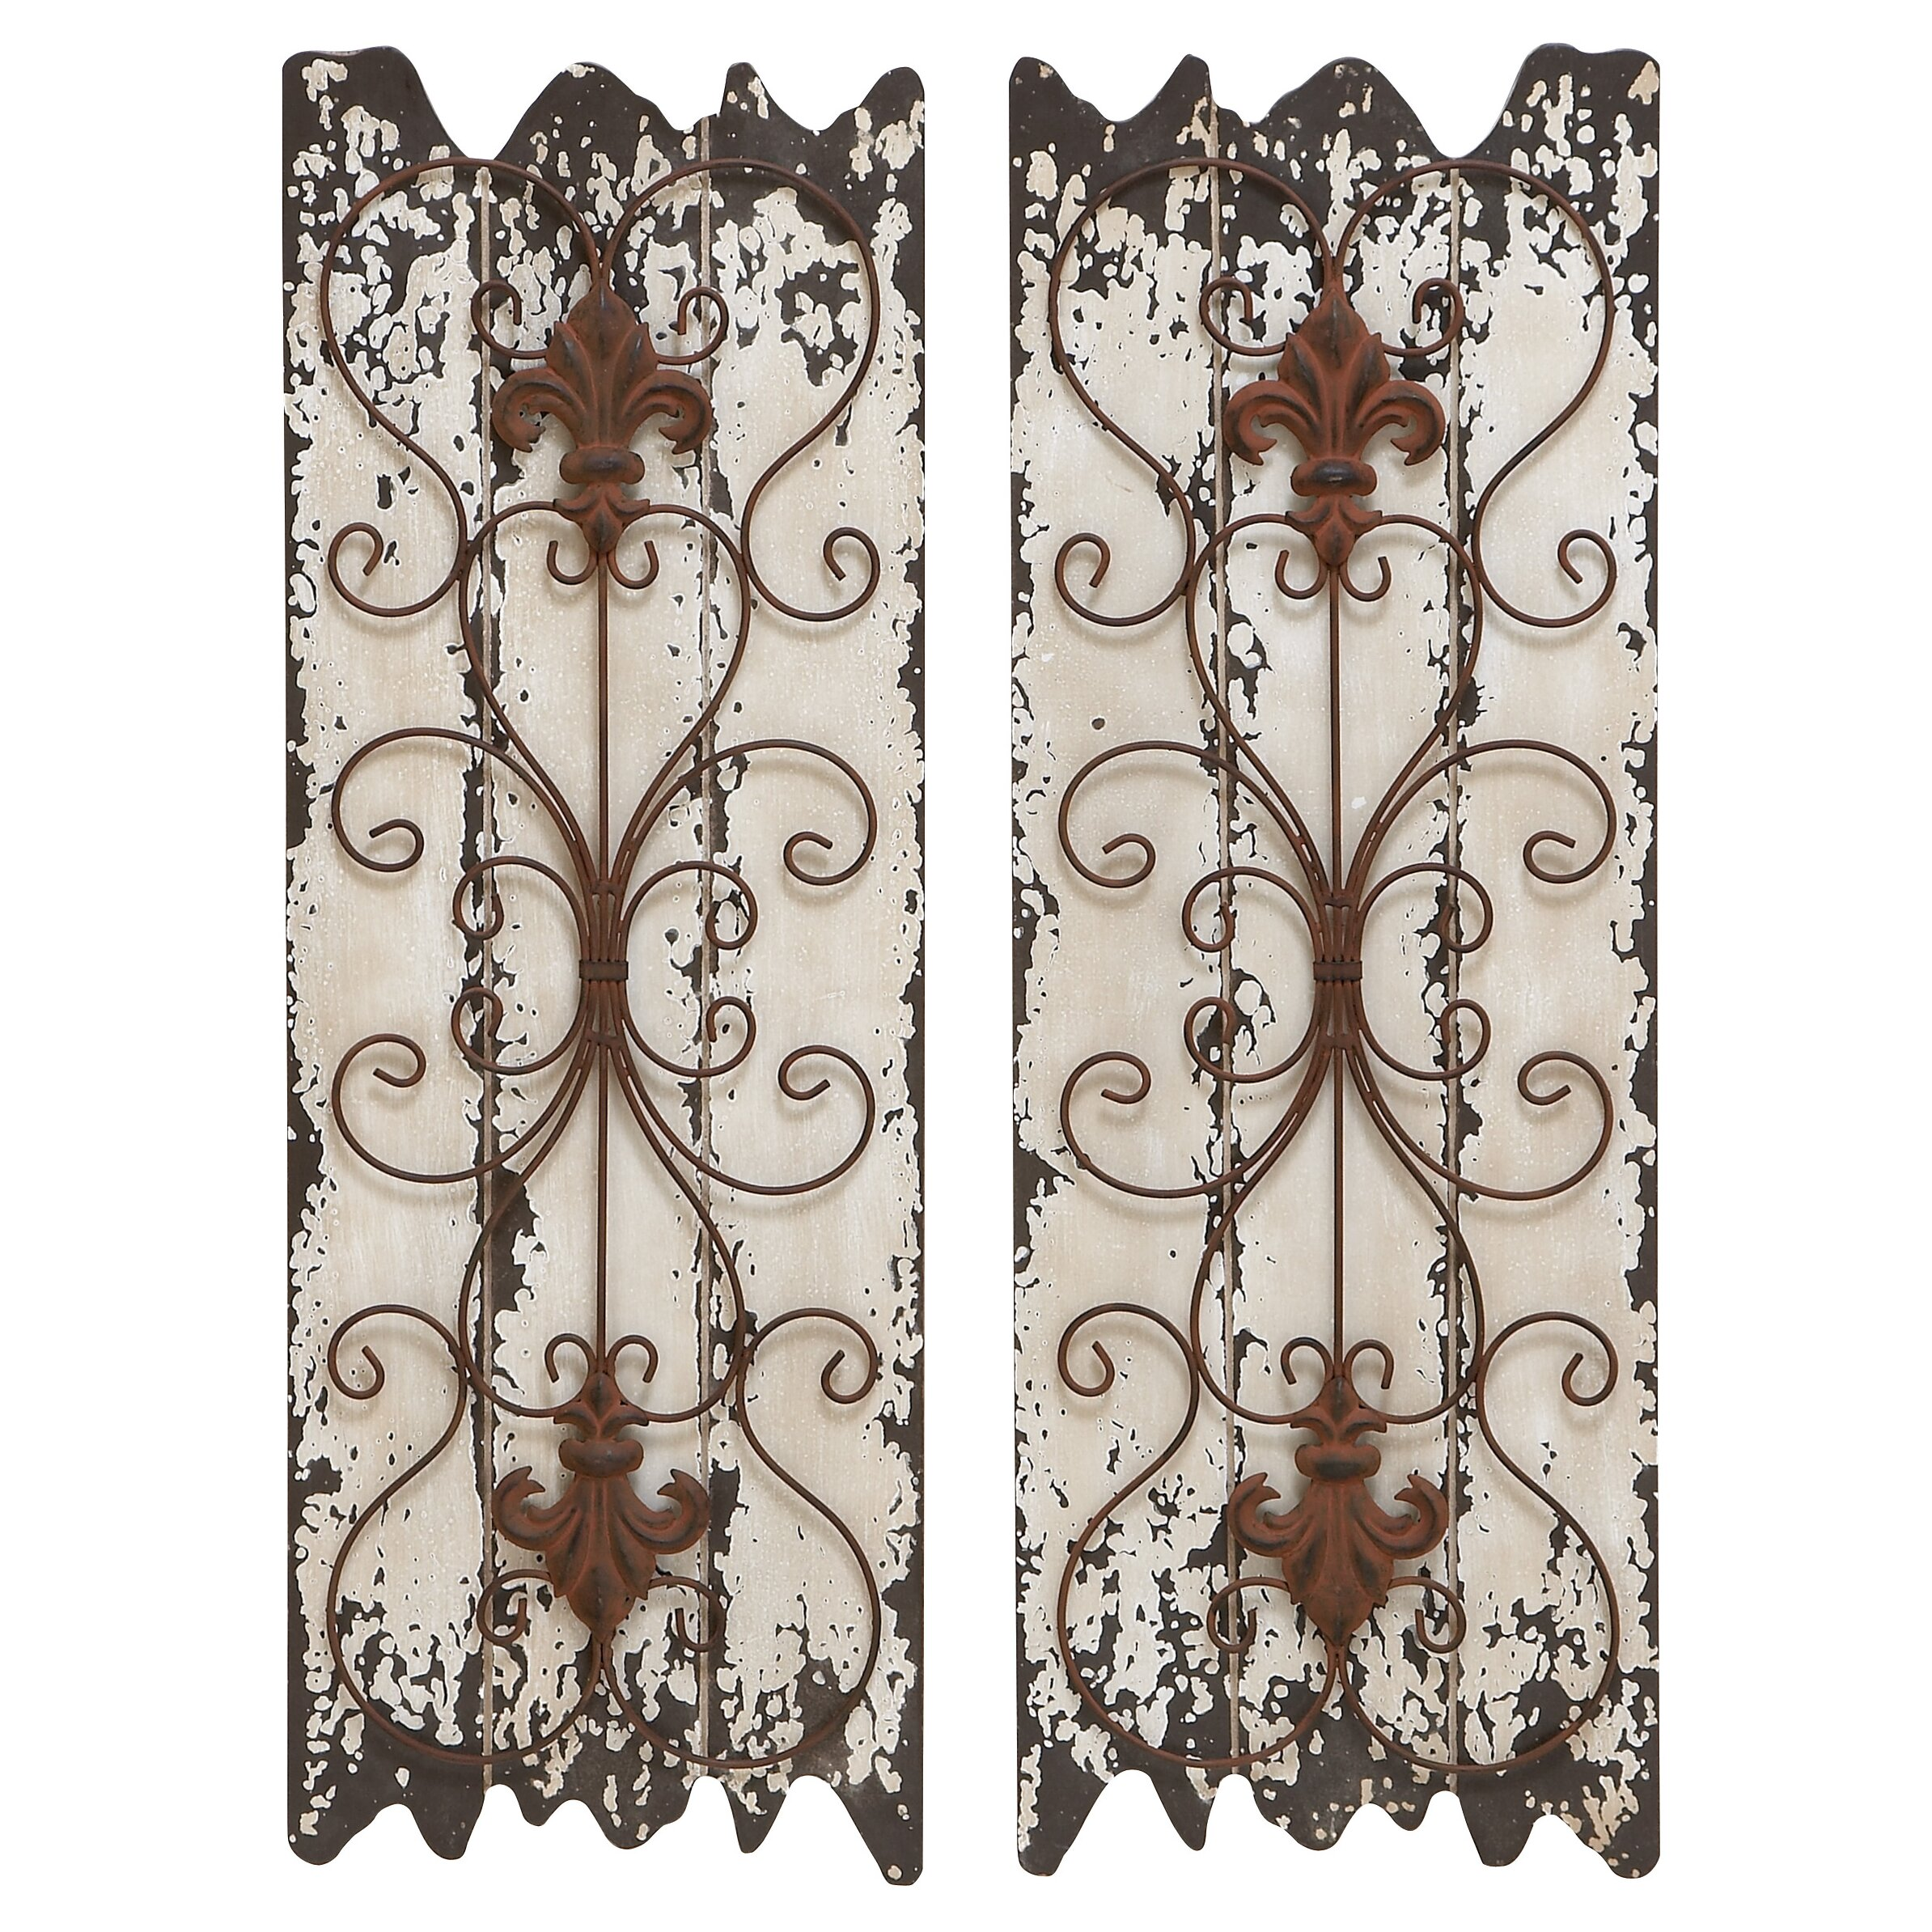 Abchomecollection fleur de lis weathered panel wall decor for Fleur de lis home decorations